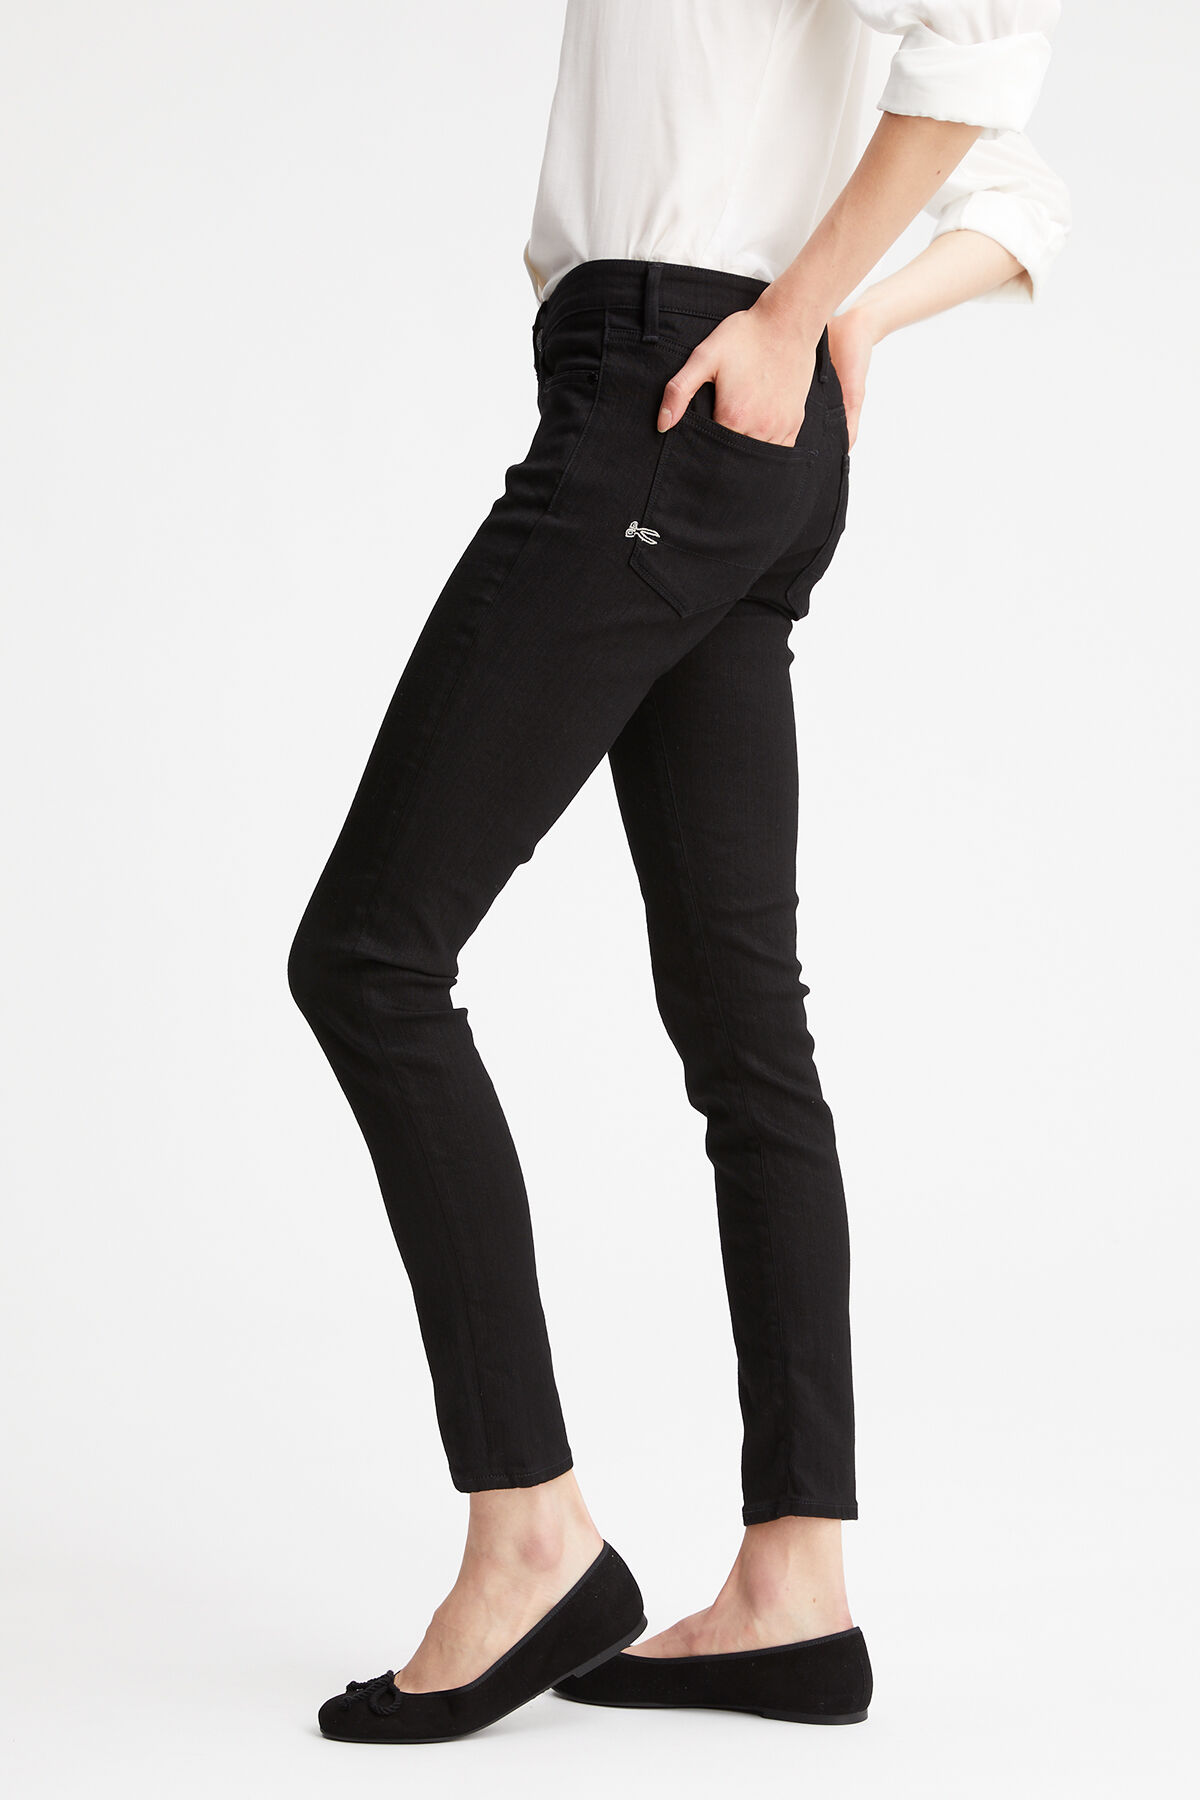 SHARP Black Power Stretch Denim - Mid-rise, Skinny Fit